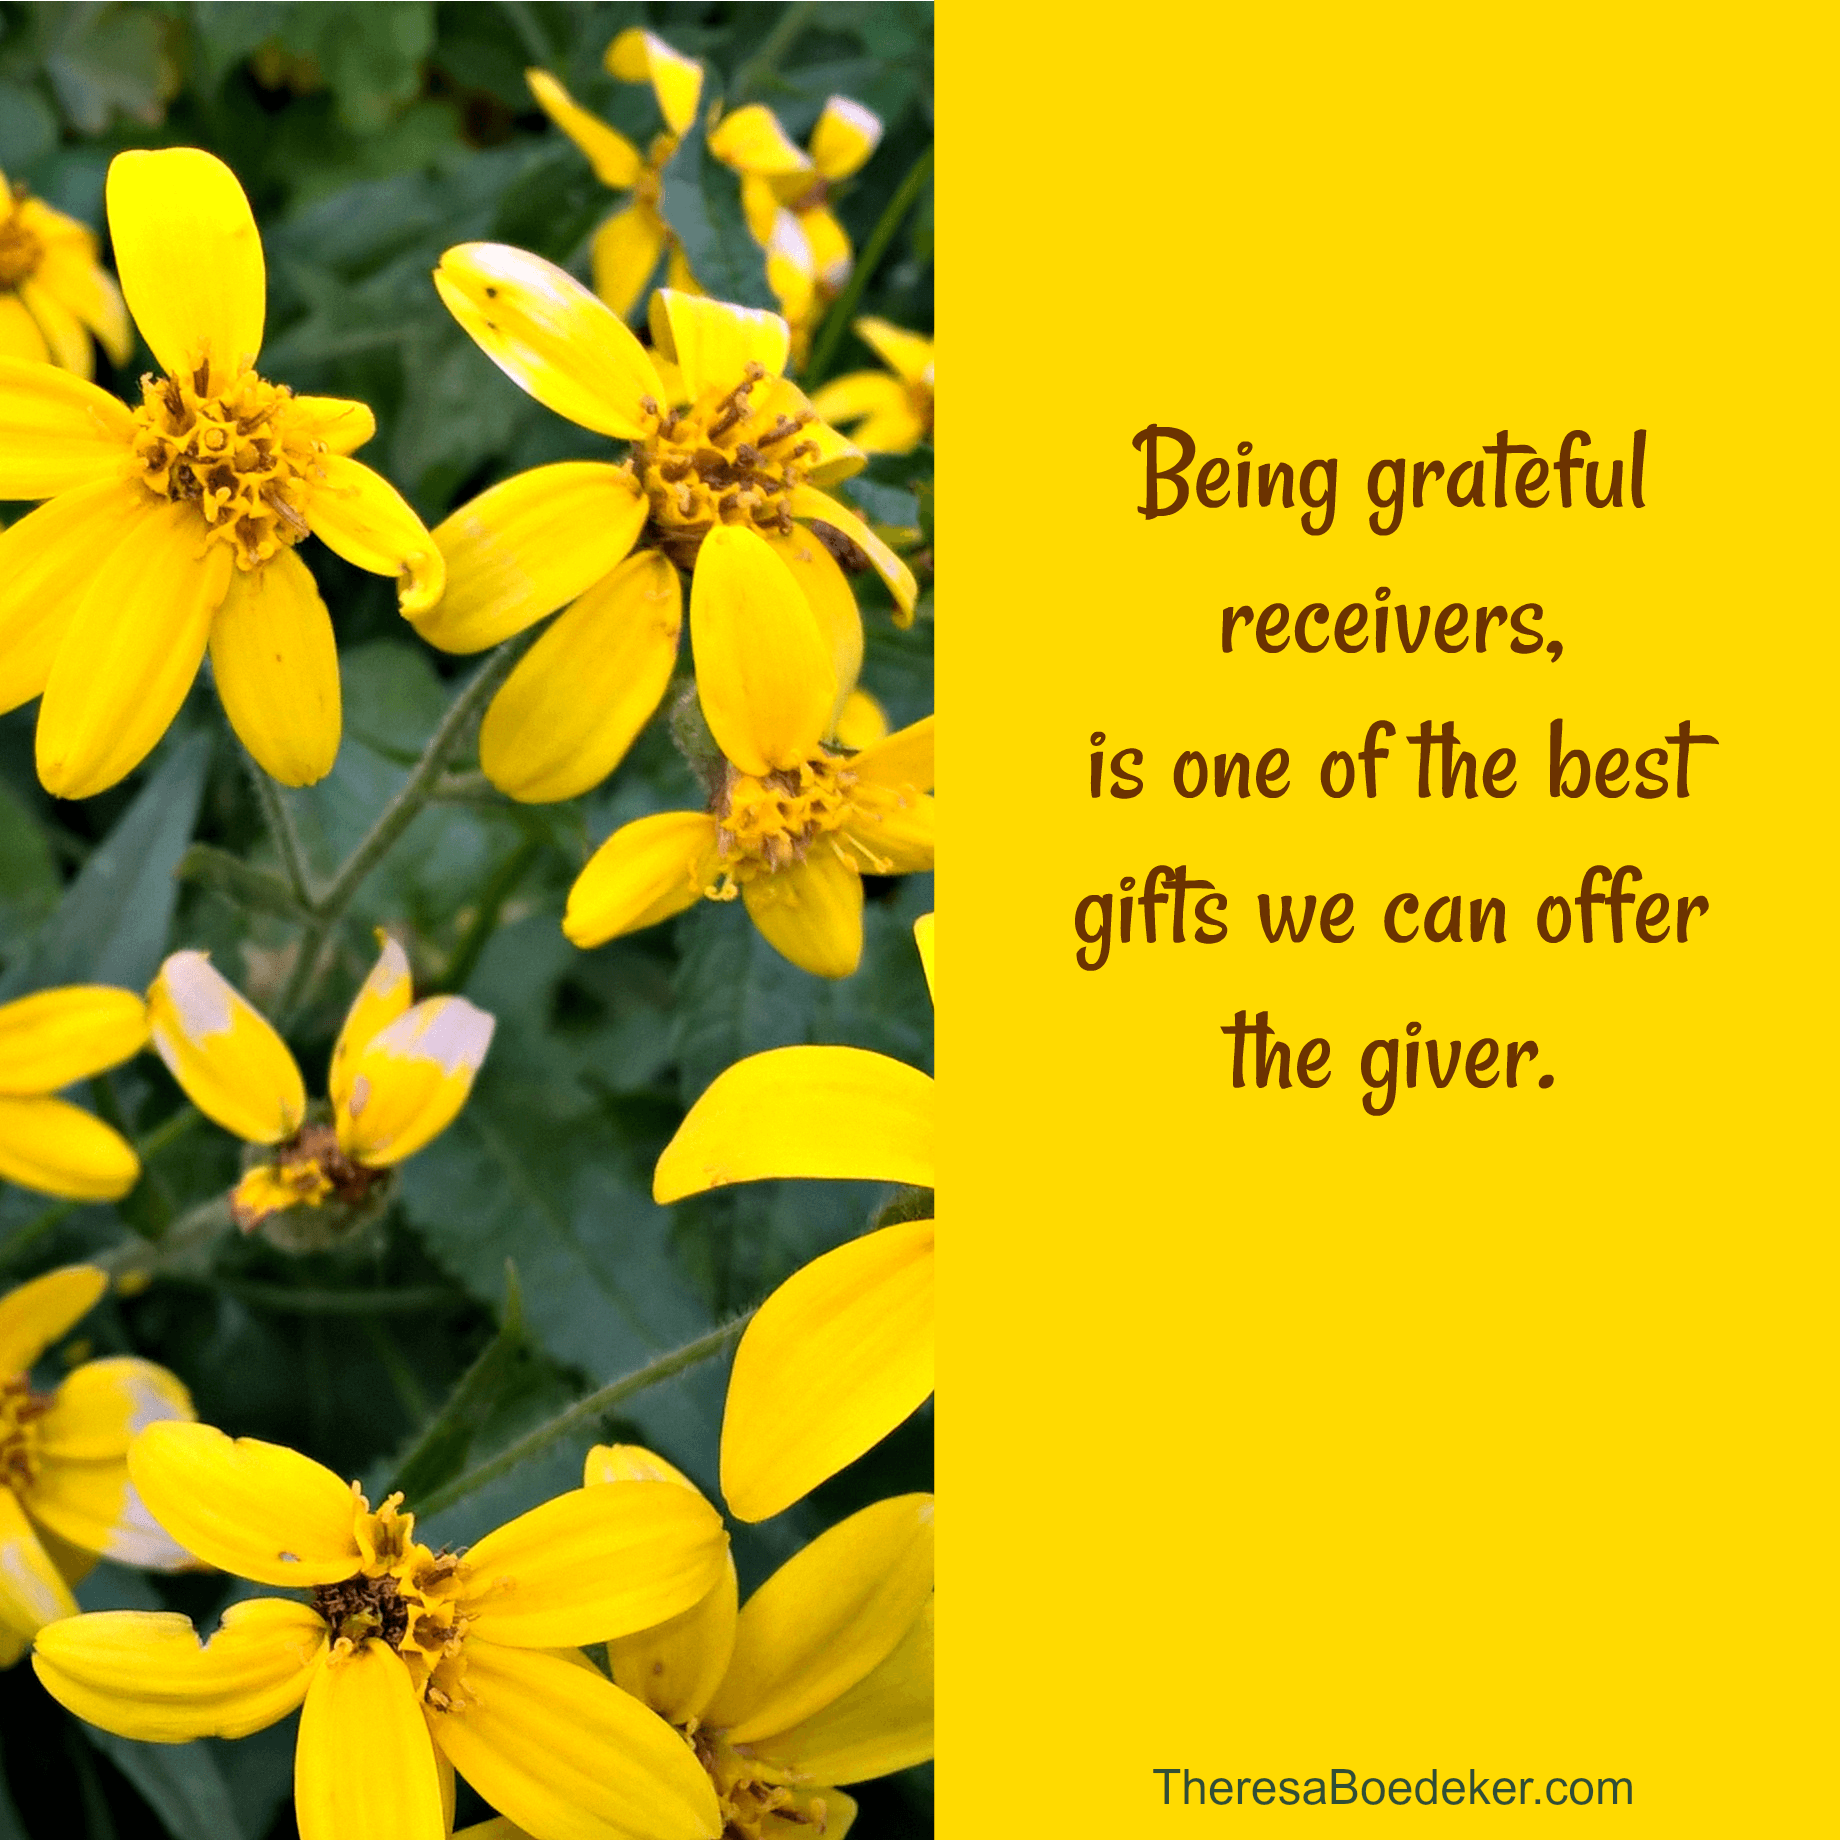 Why is it harder to receive gifts, than give gifts. Stop being critical of them or yourself. Receiving gifts graciously is a gift we can give the giver.